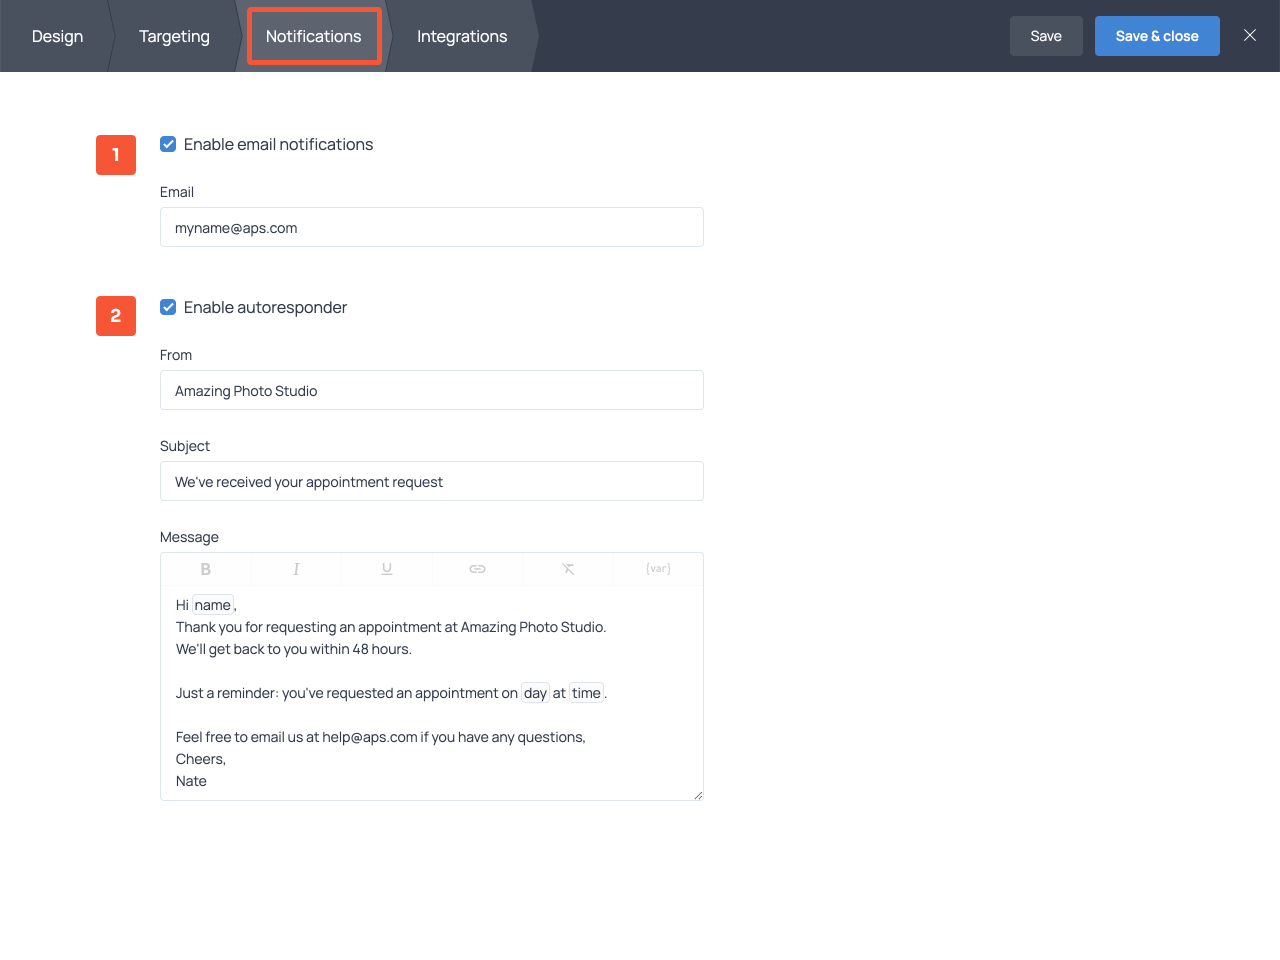 How to create an automatic response for an appointment request form